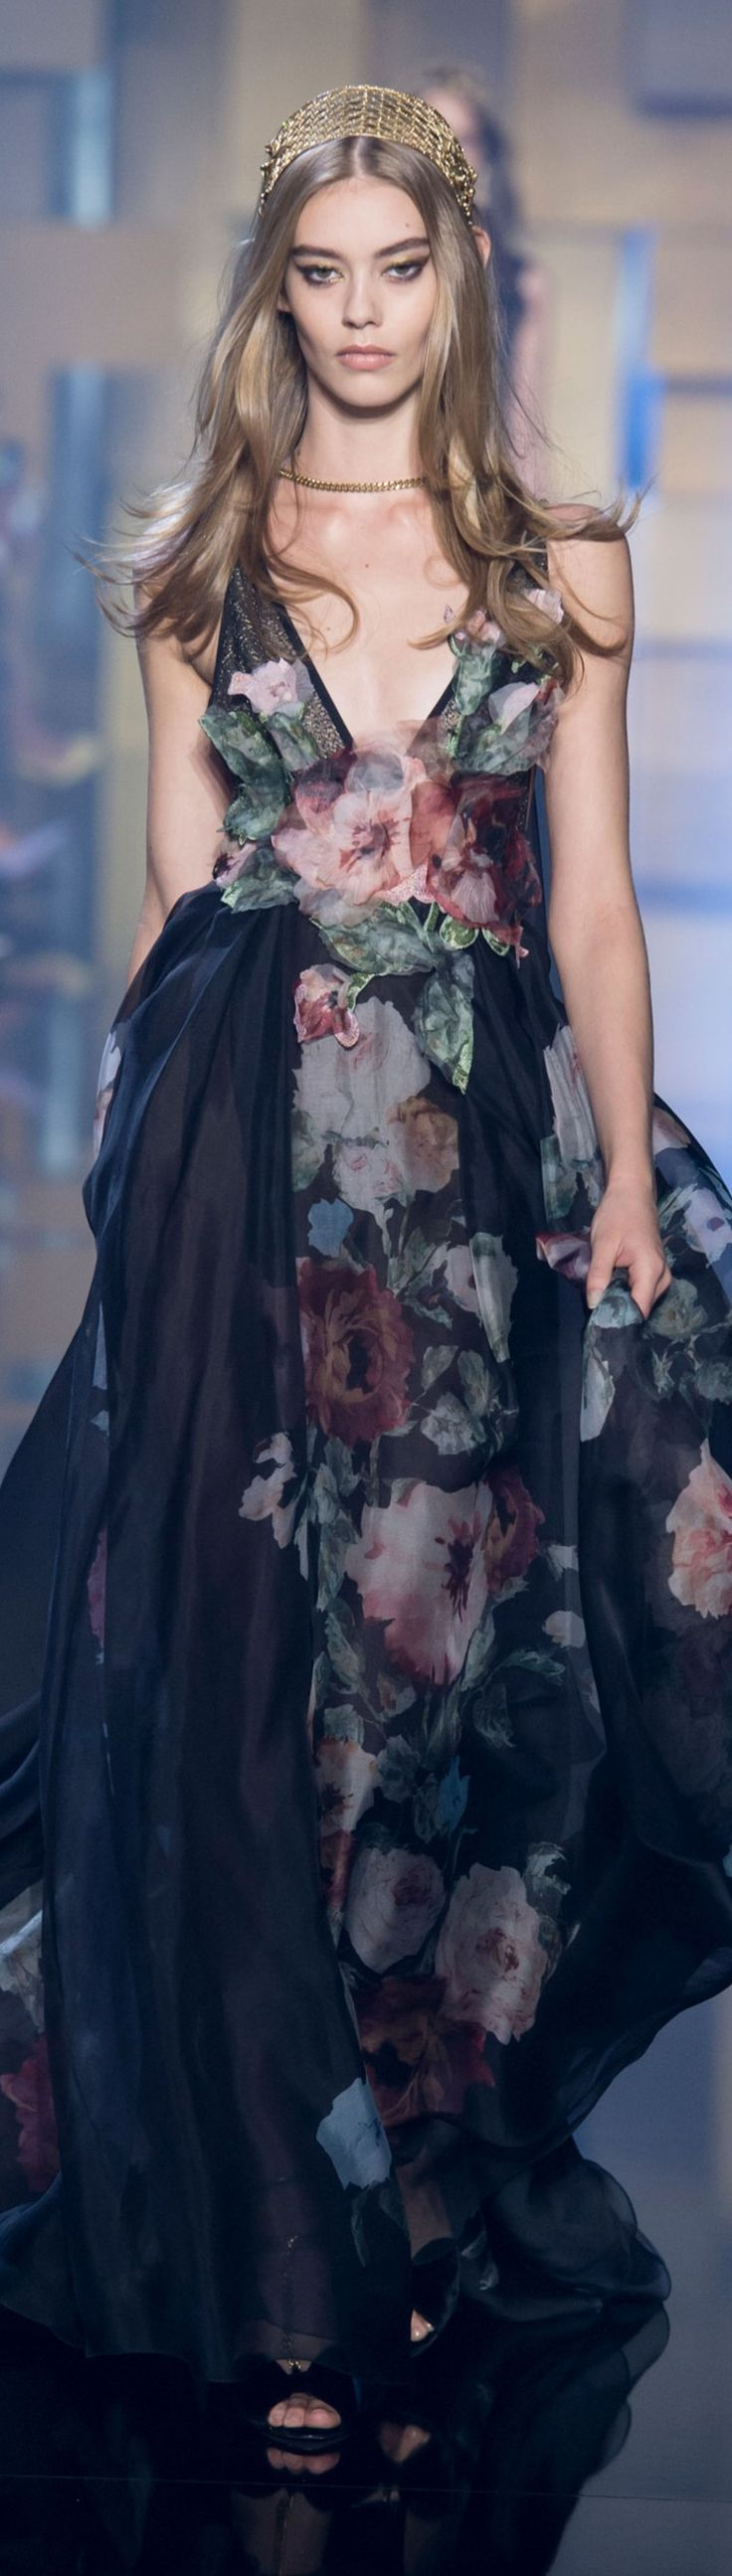 Elie Saab ~ Couture Navy and Pink Floral Gown FW 2015